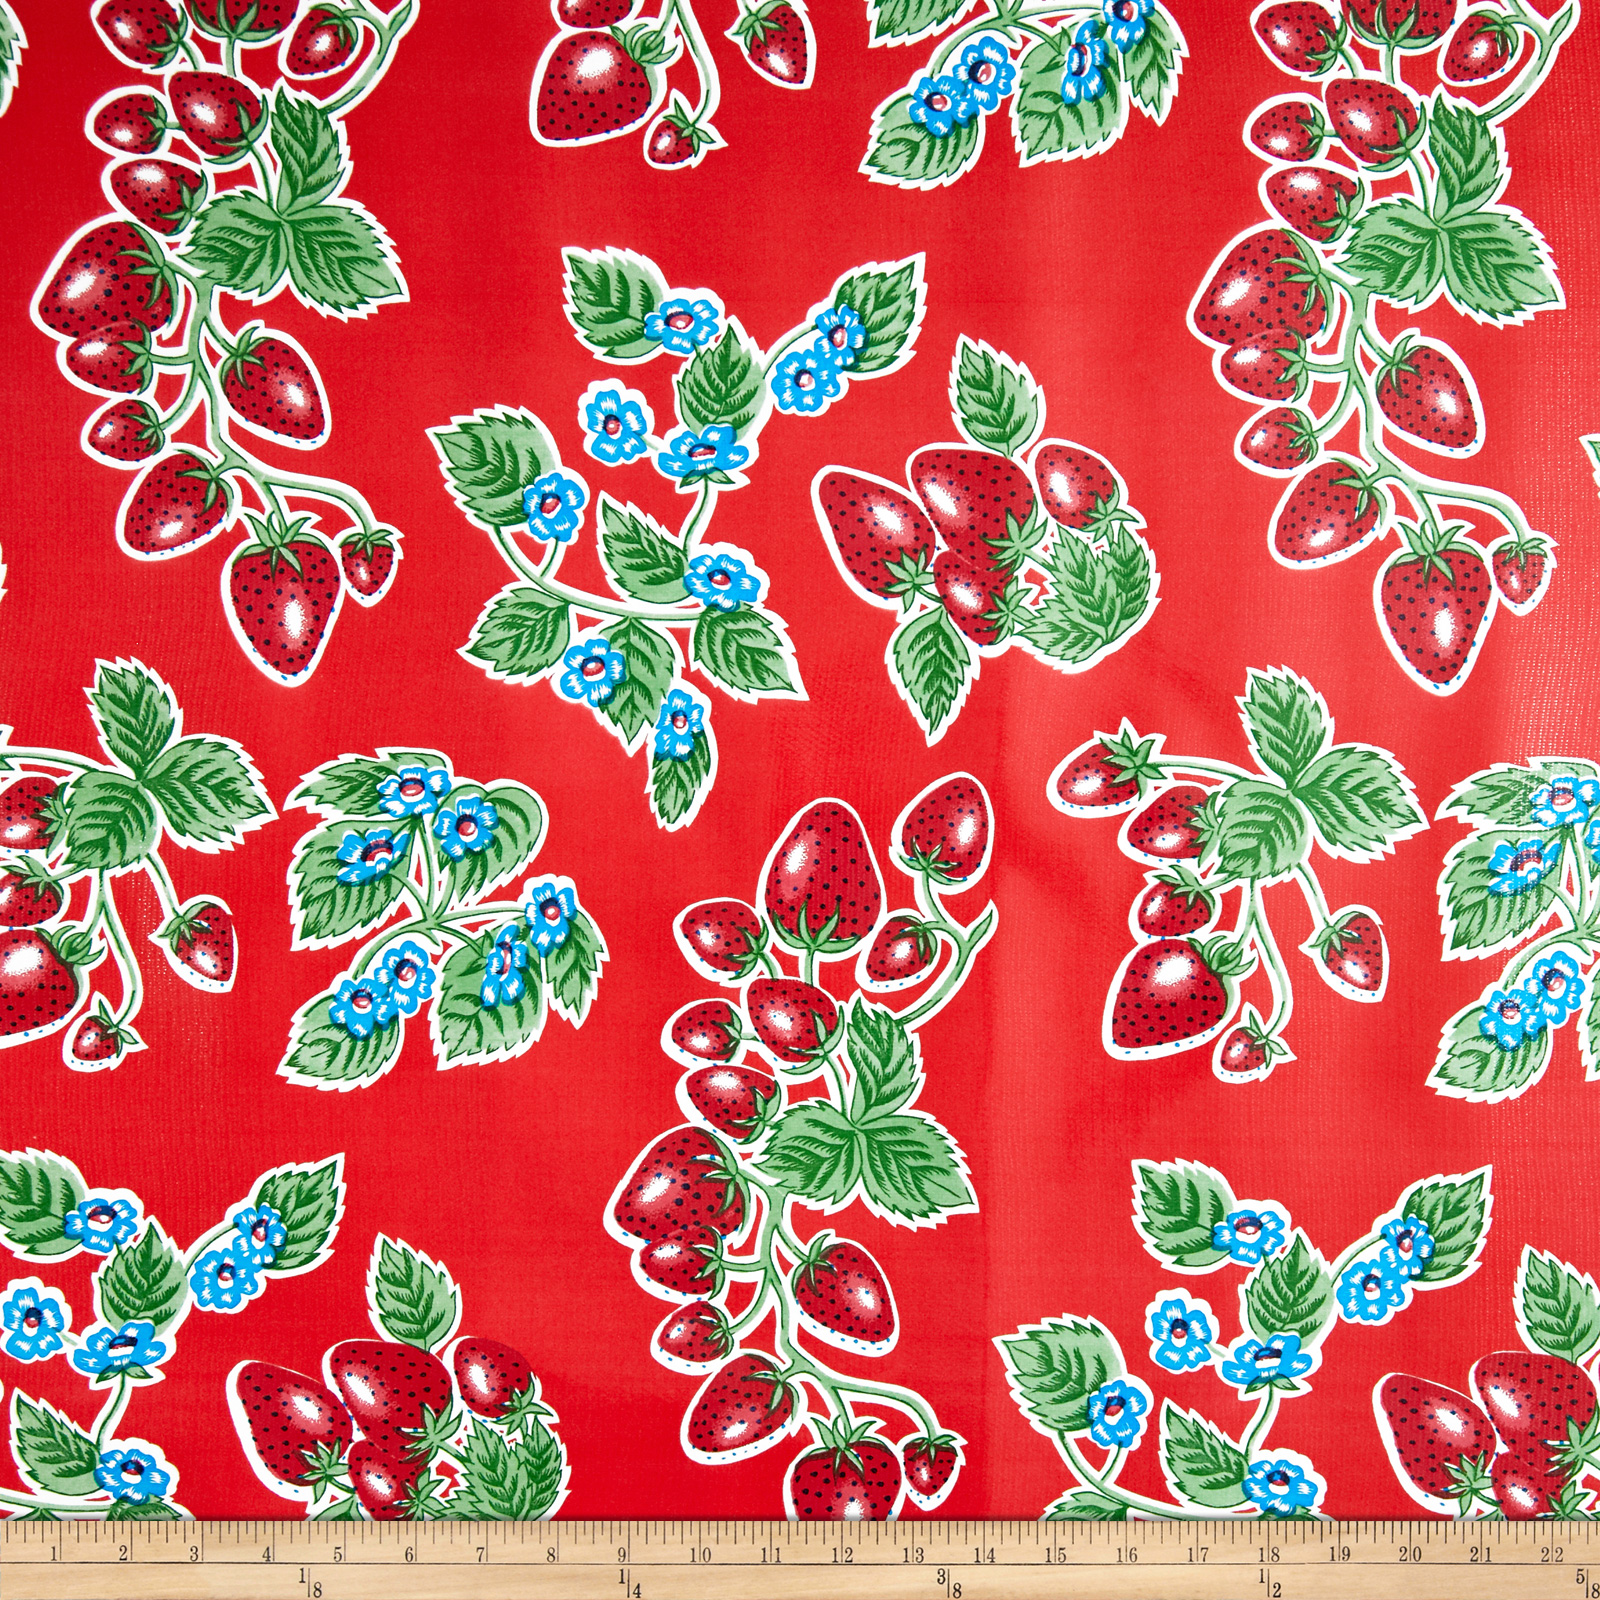 Oil Cloth Strawberries Red Fabric